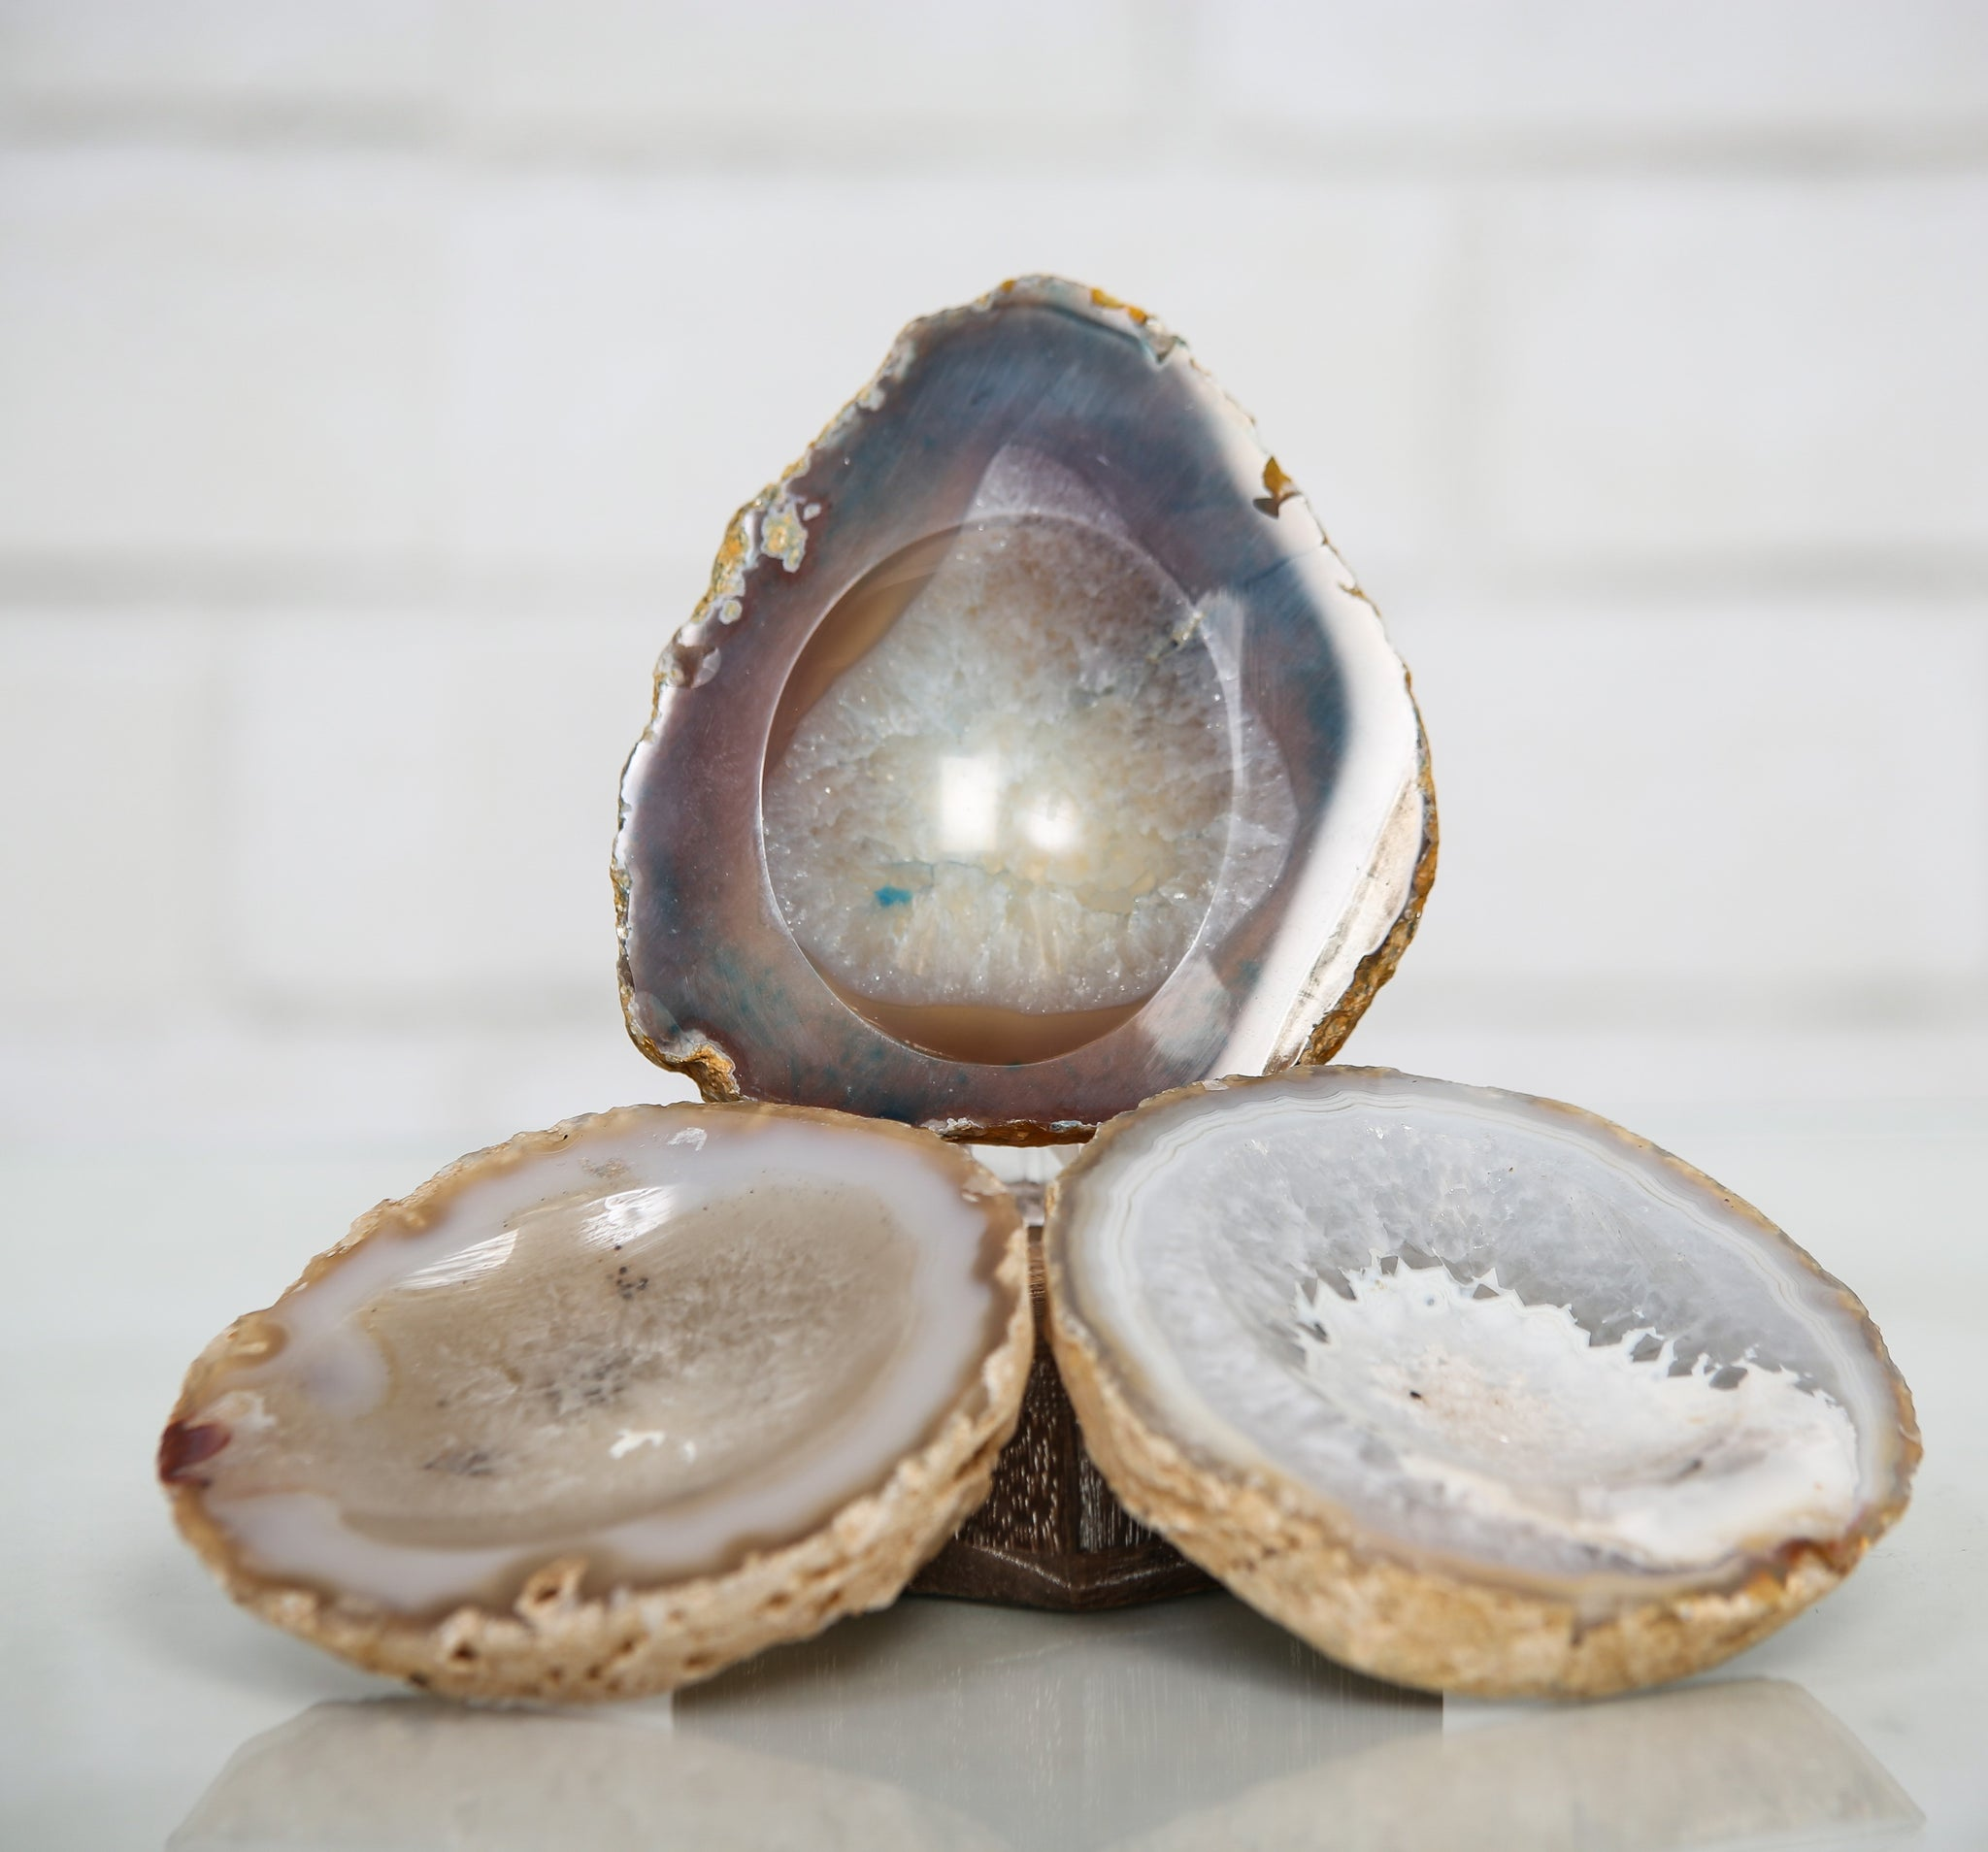 Crystal and Agate Bowls